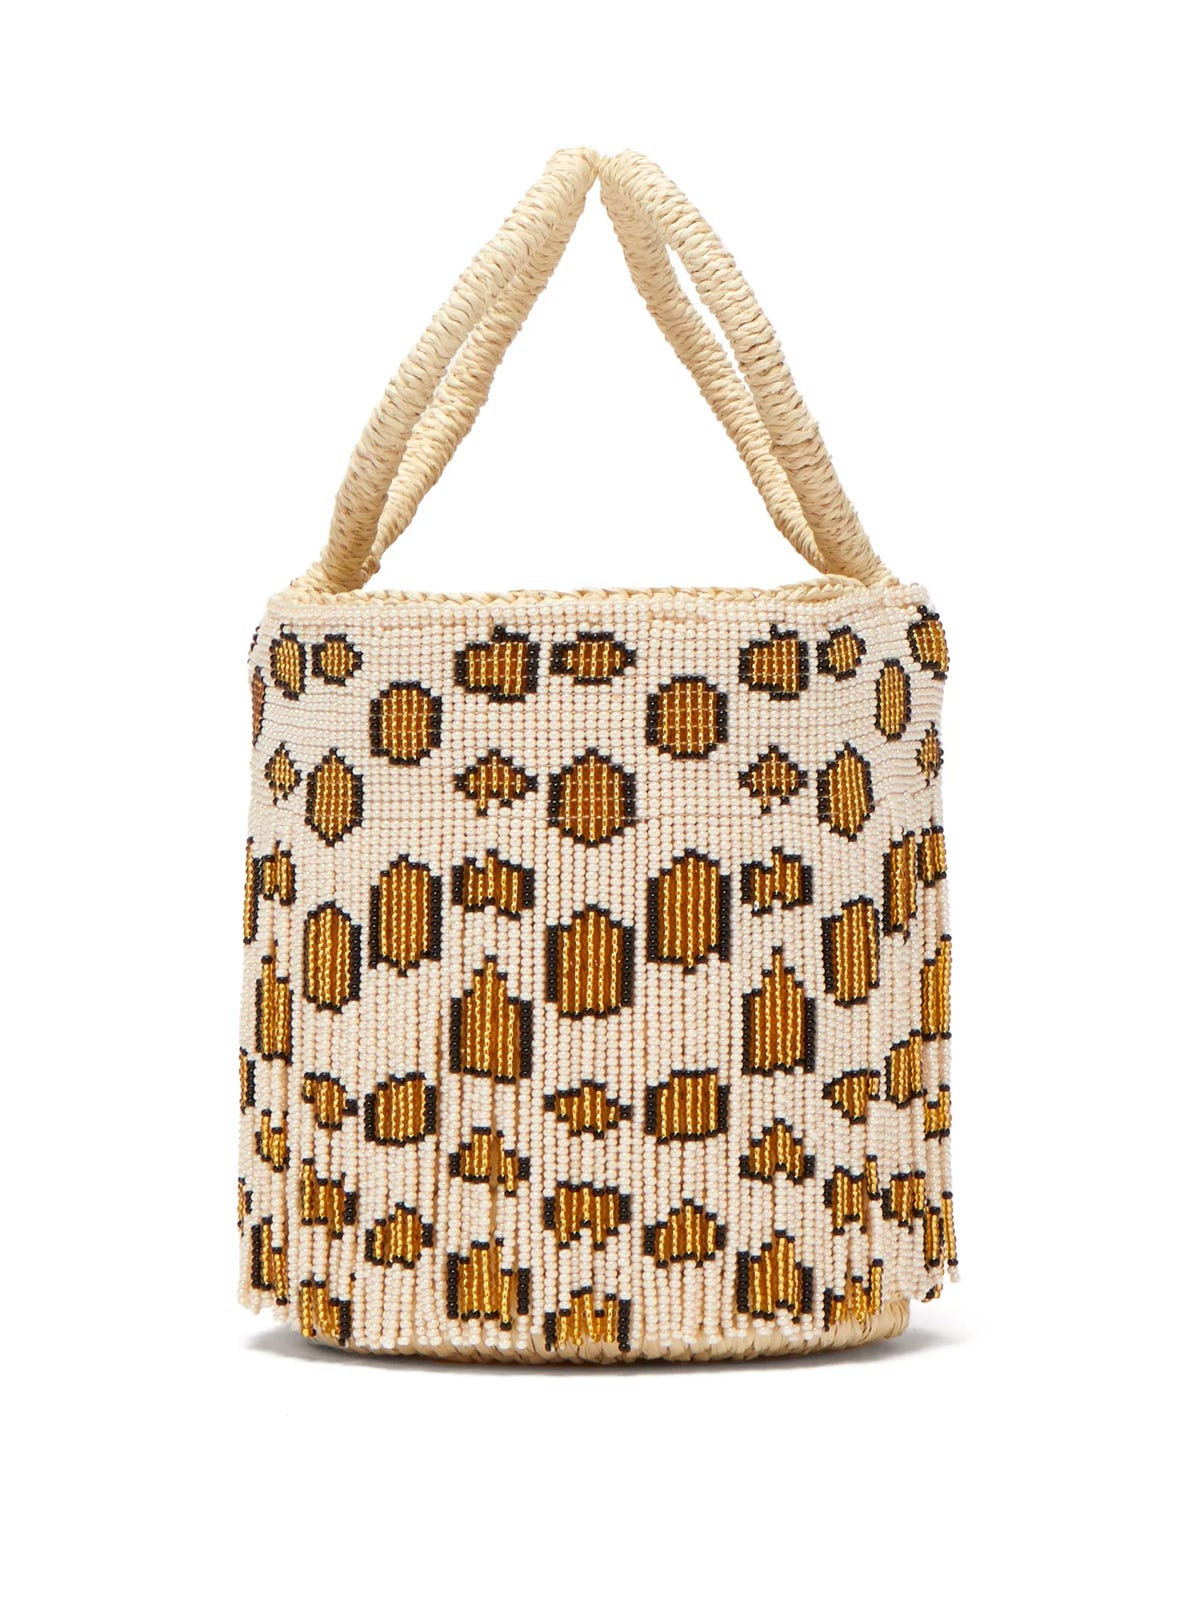 4aa7deaec9 Beaded And Pearl Embellished Handbag Trend For 2018